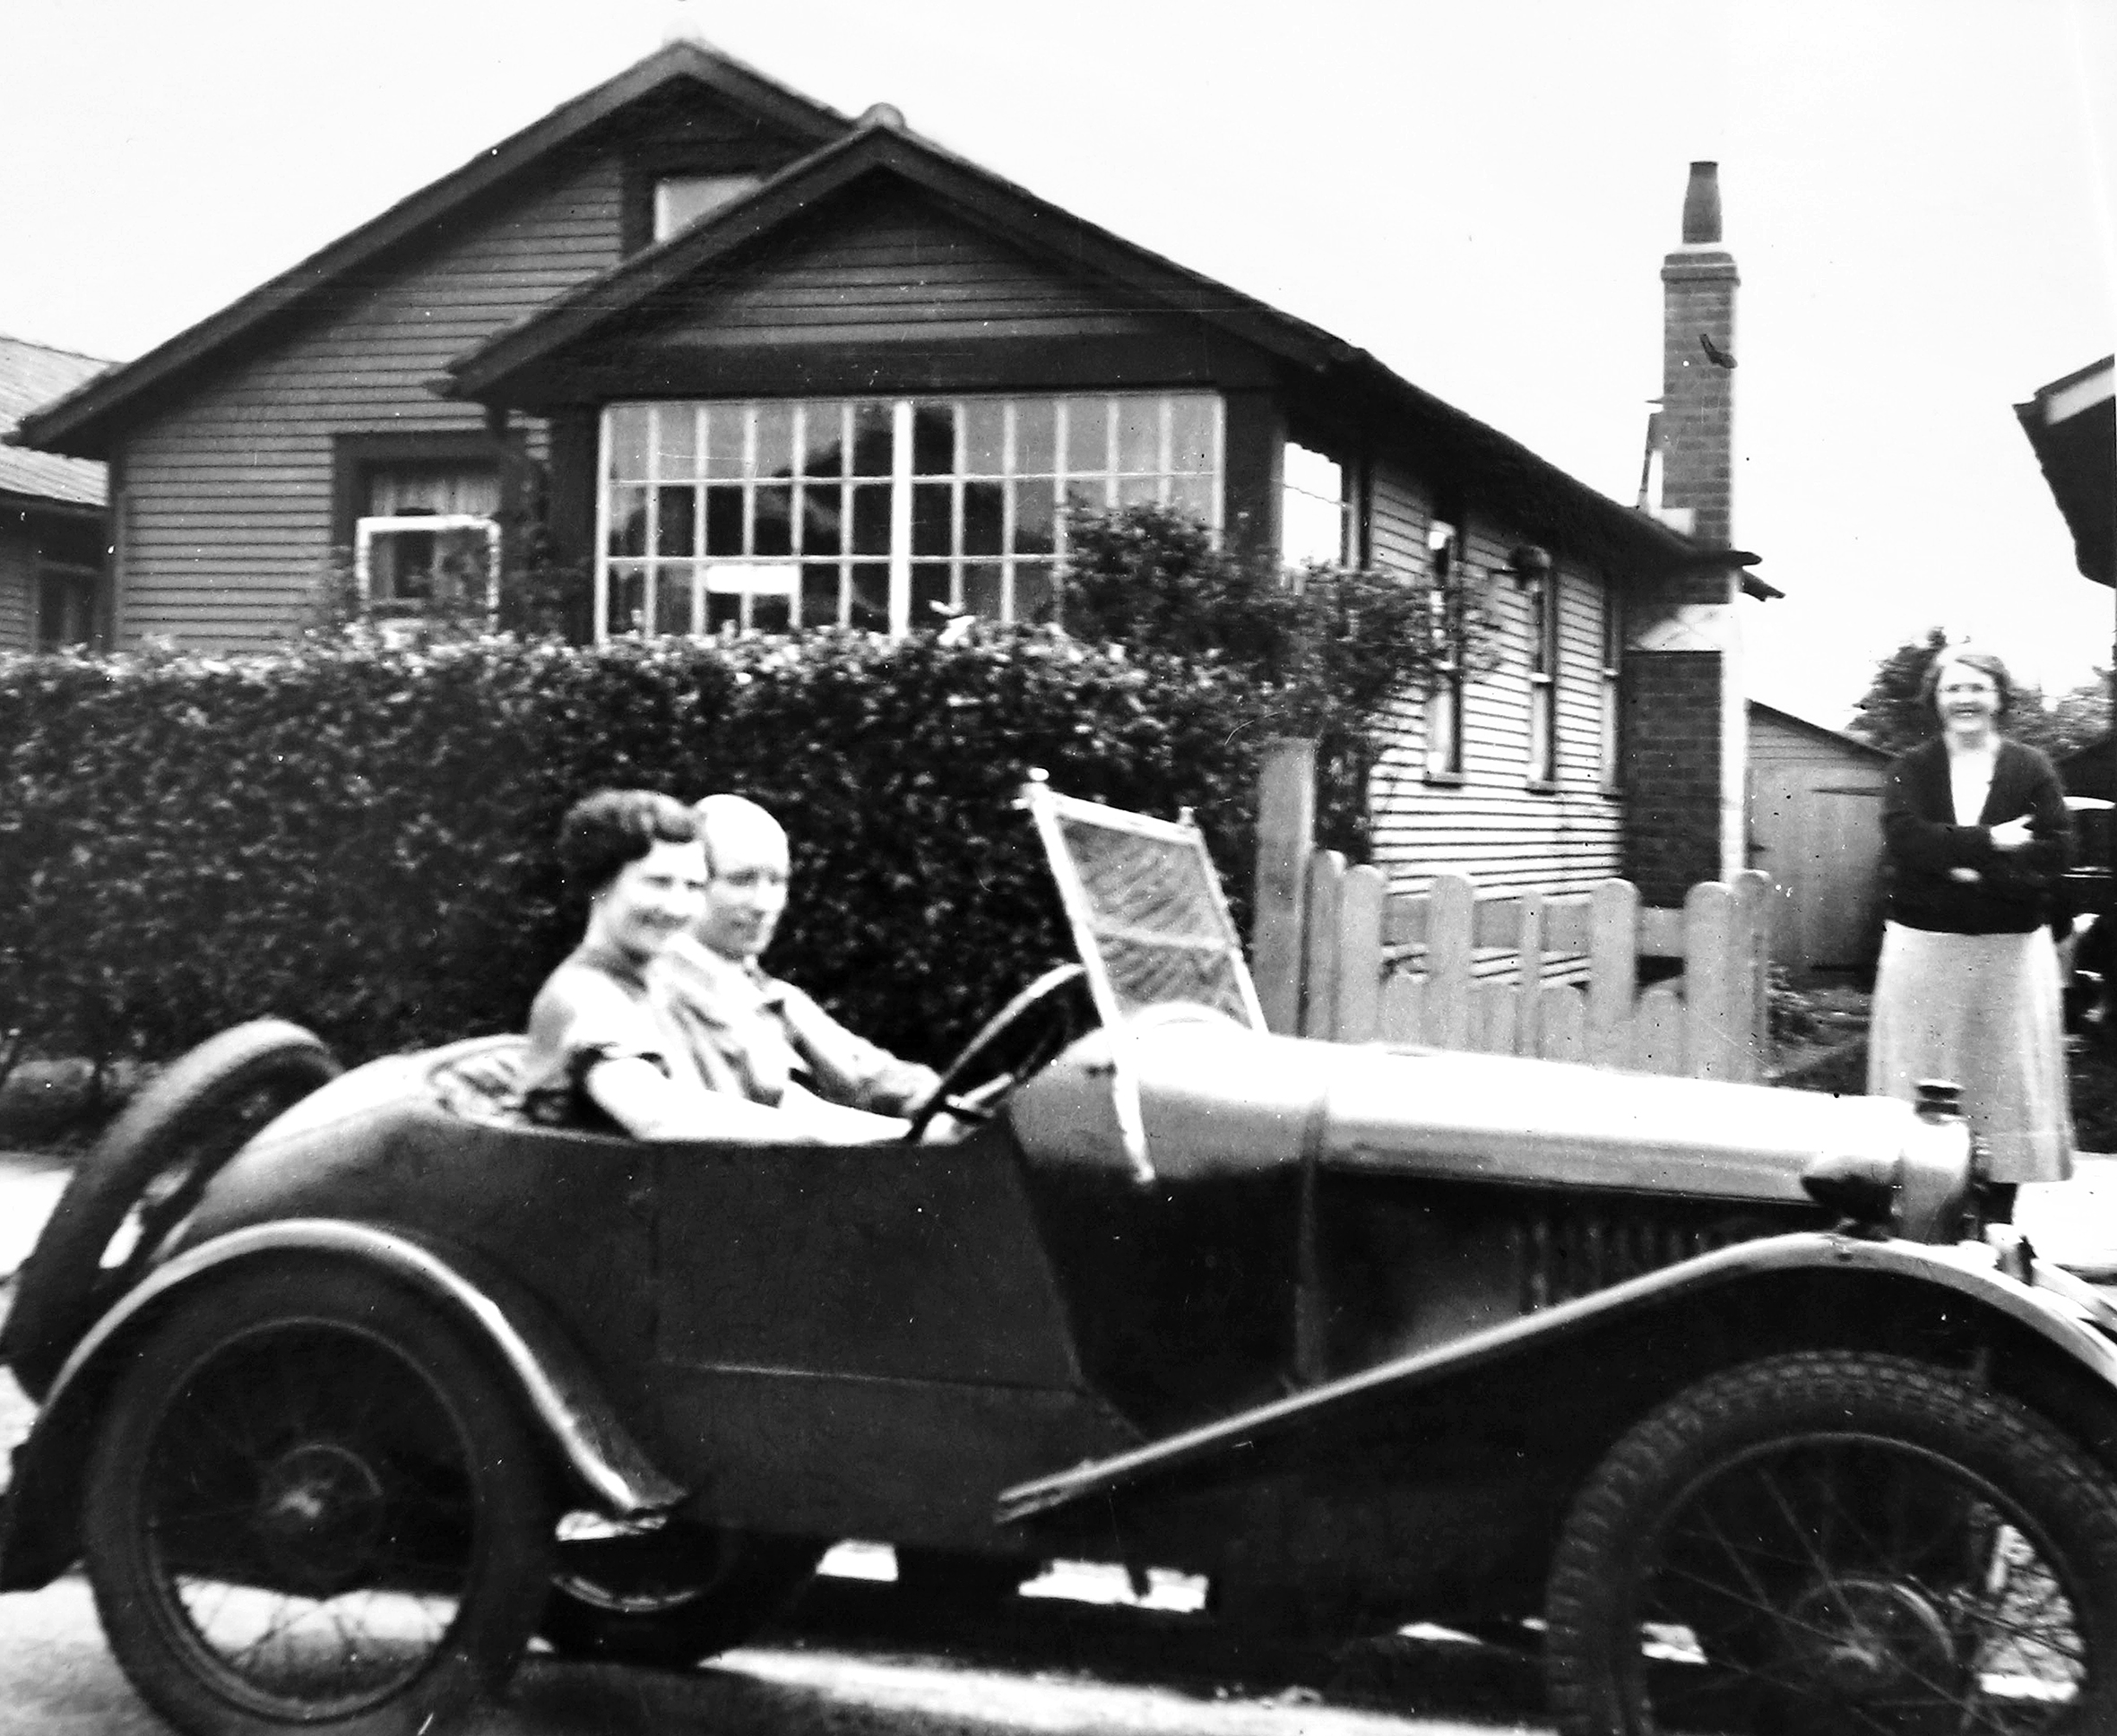 Rita Walters Parents outside number 8 Central Avenue in the 1930's_small.jpg